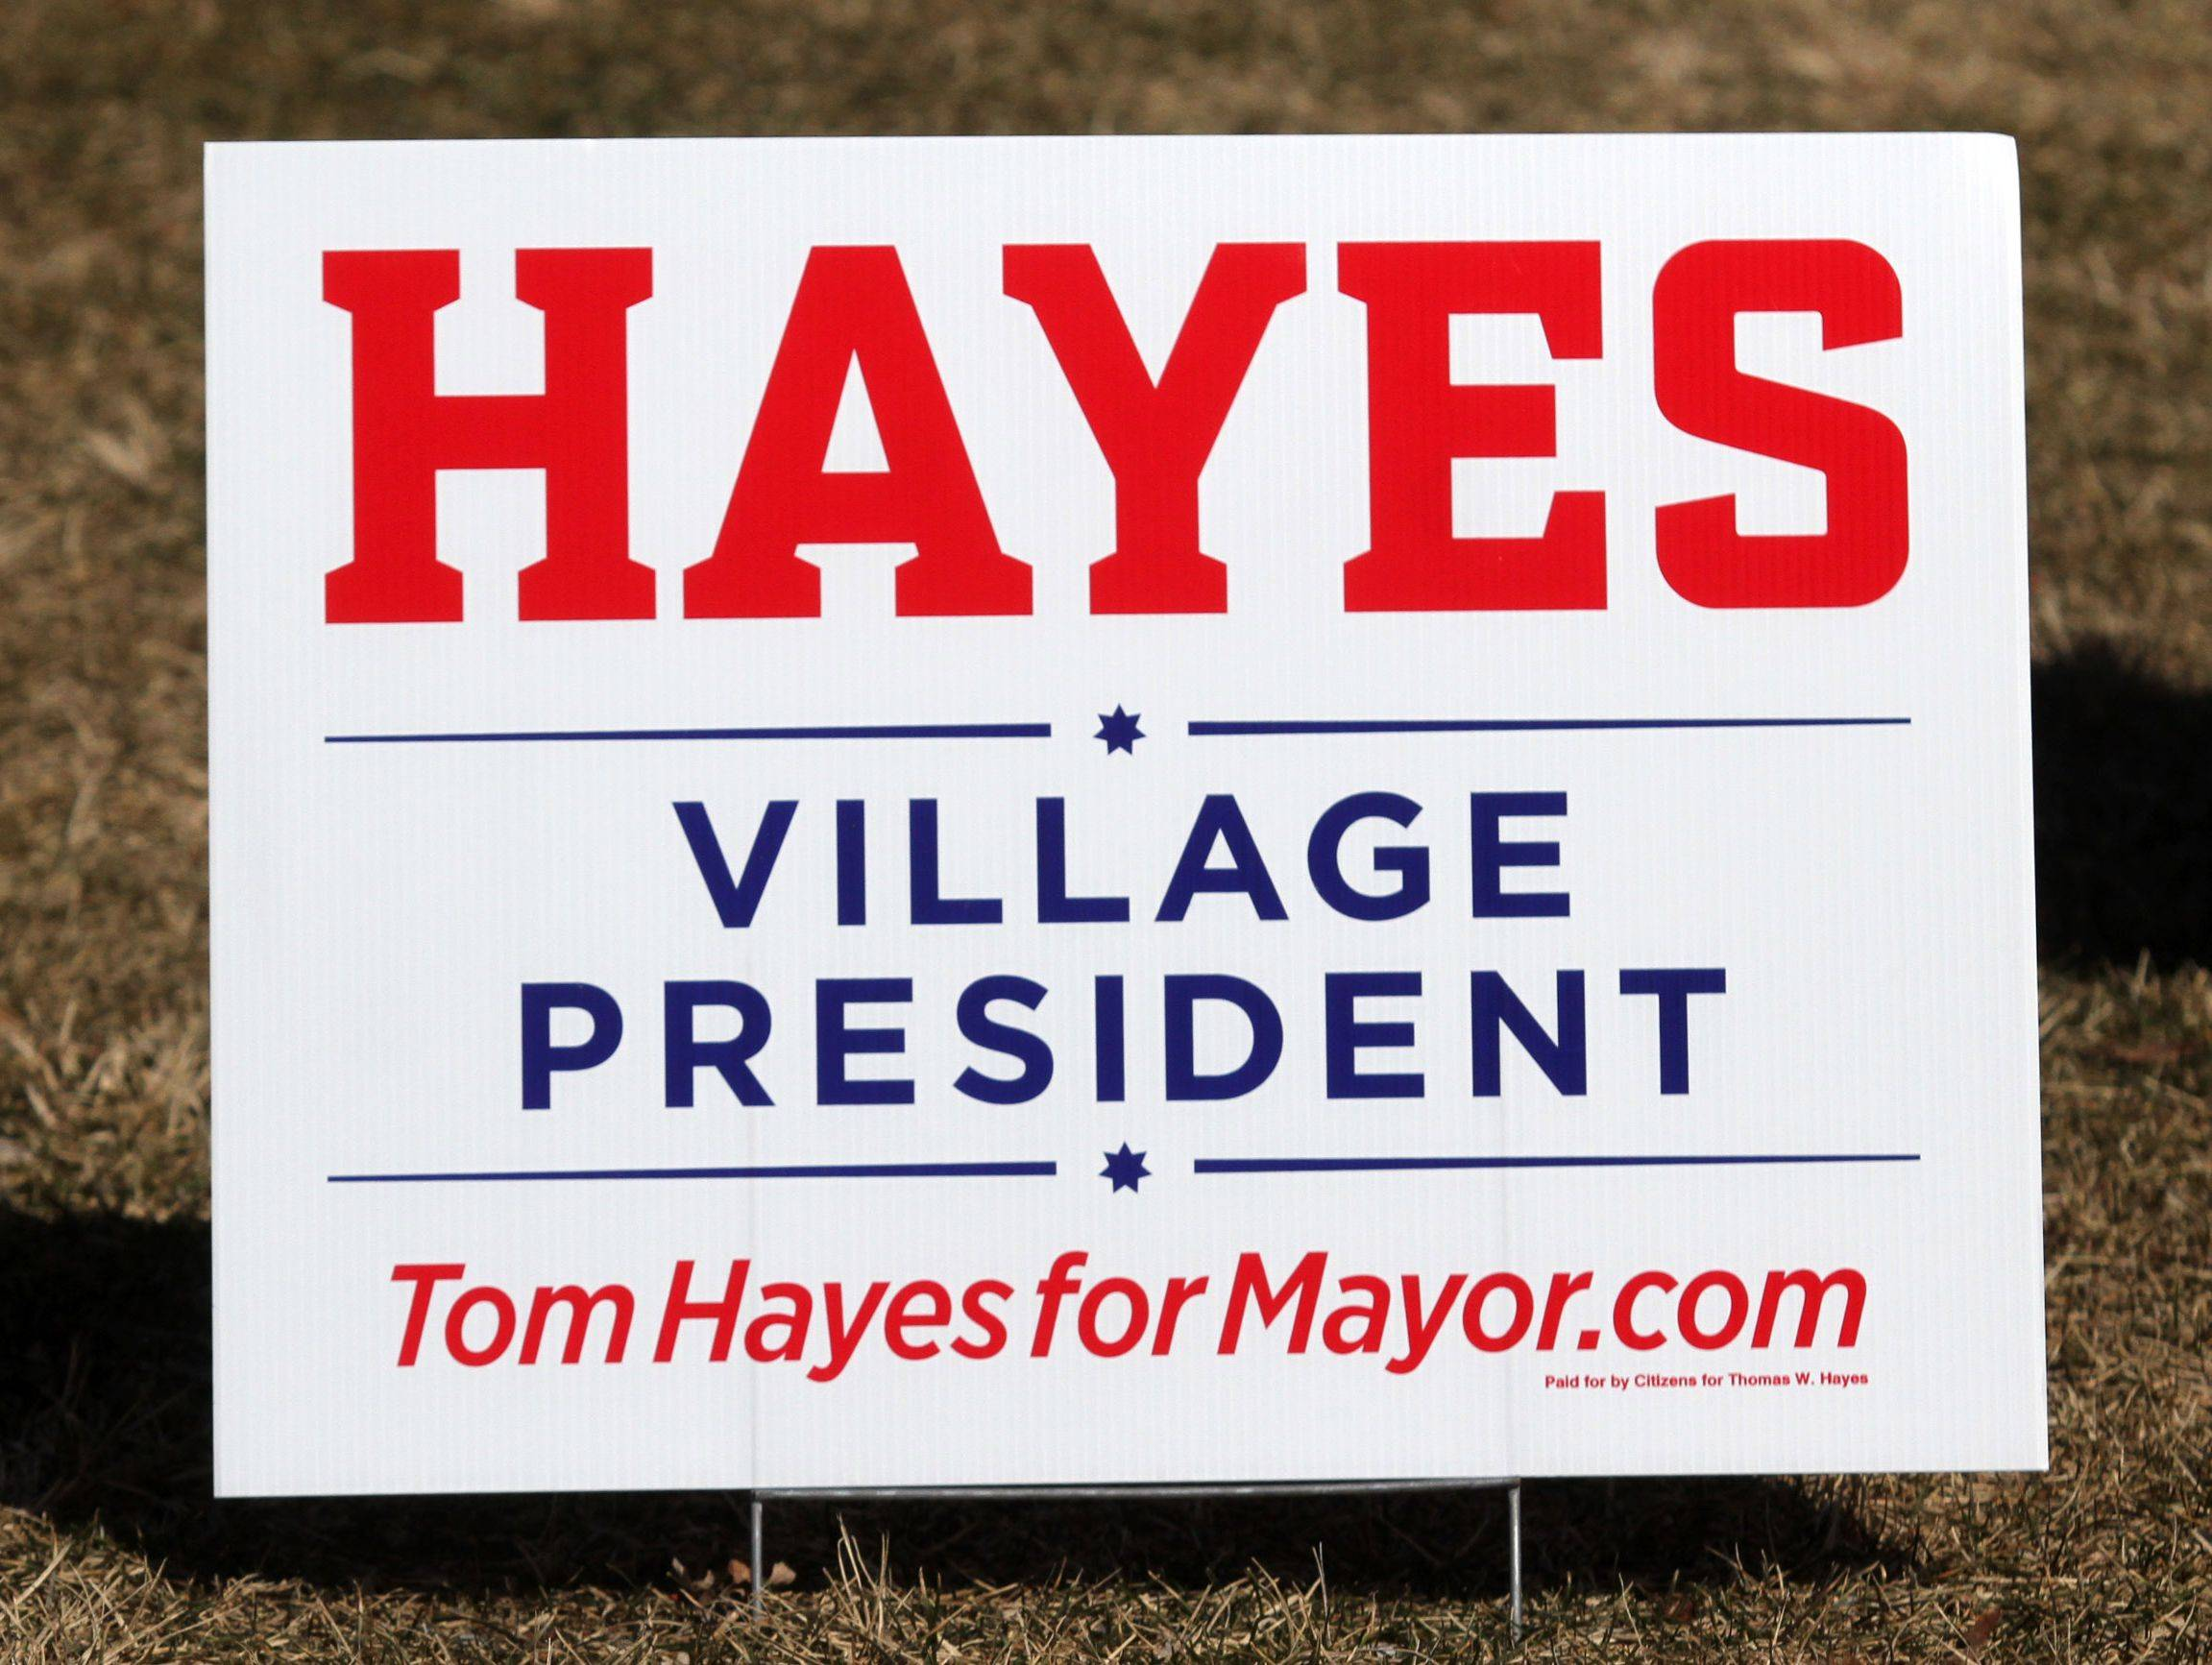 Tom Hayes' 2013 sign for Arlington Heights mayor.